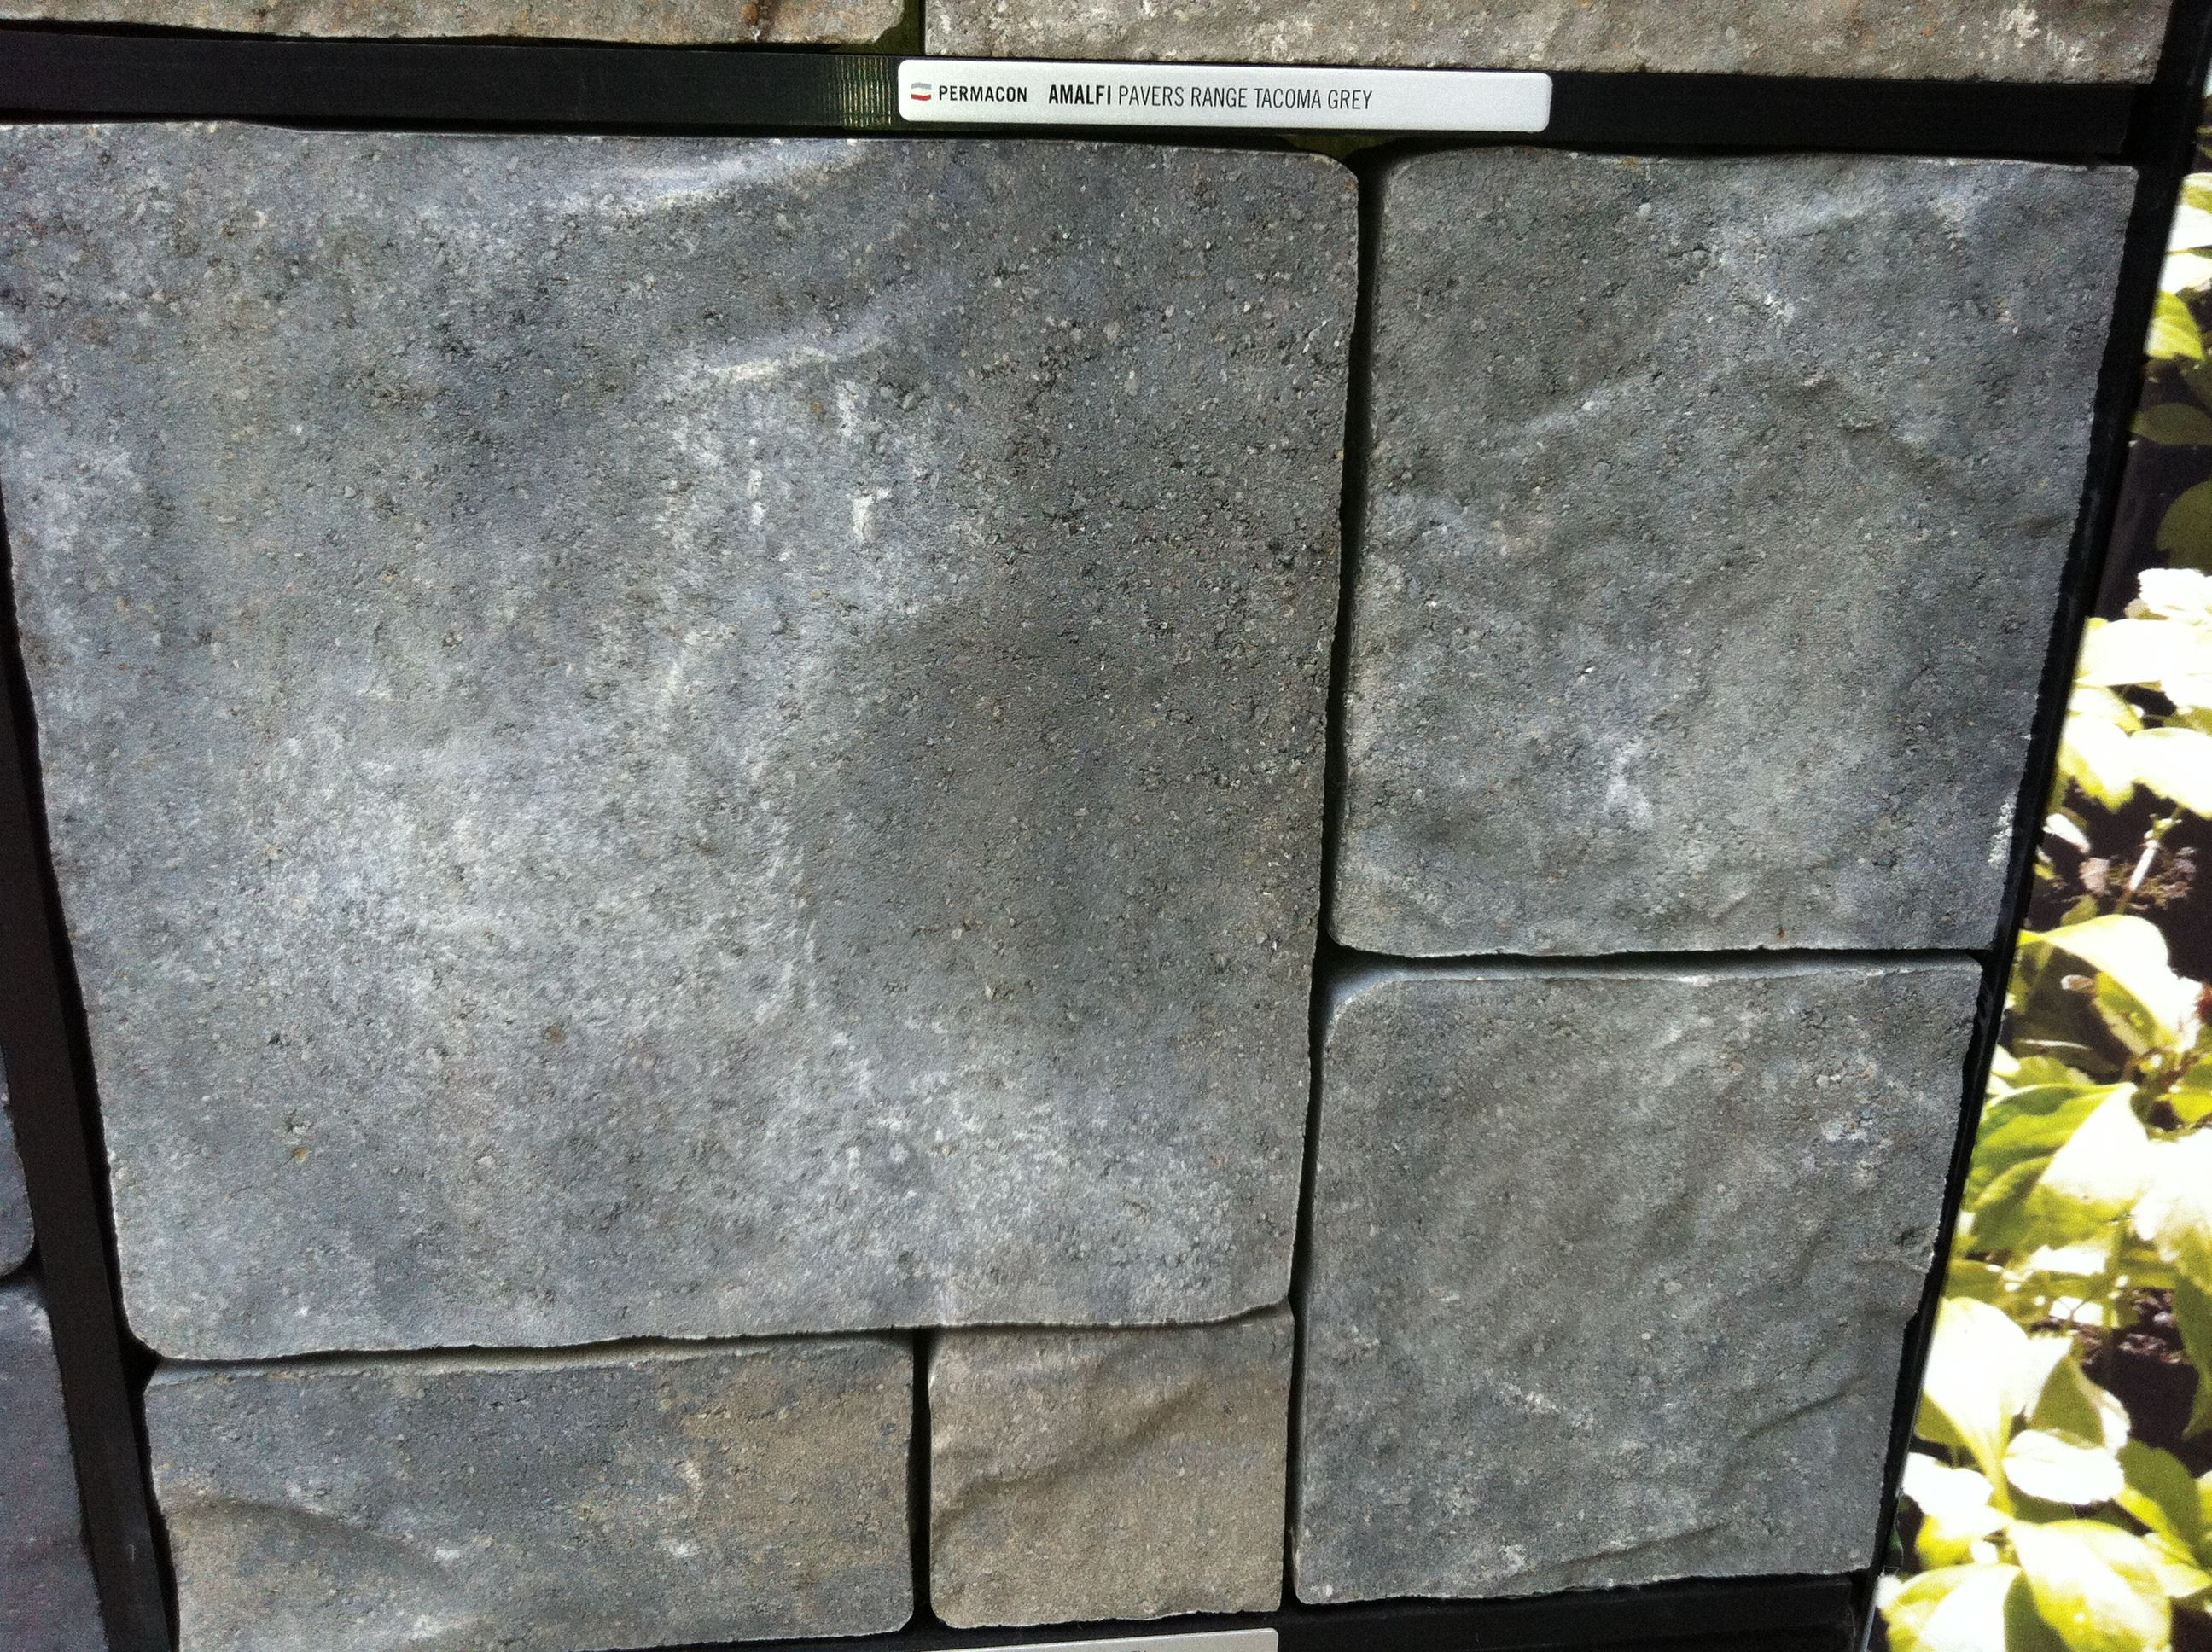 permacon amalfi paver tacoma grey colour blend favorite